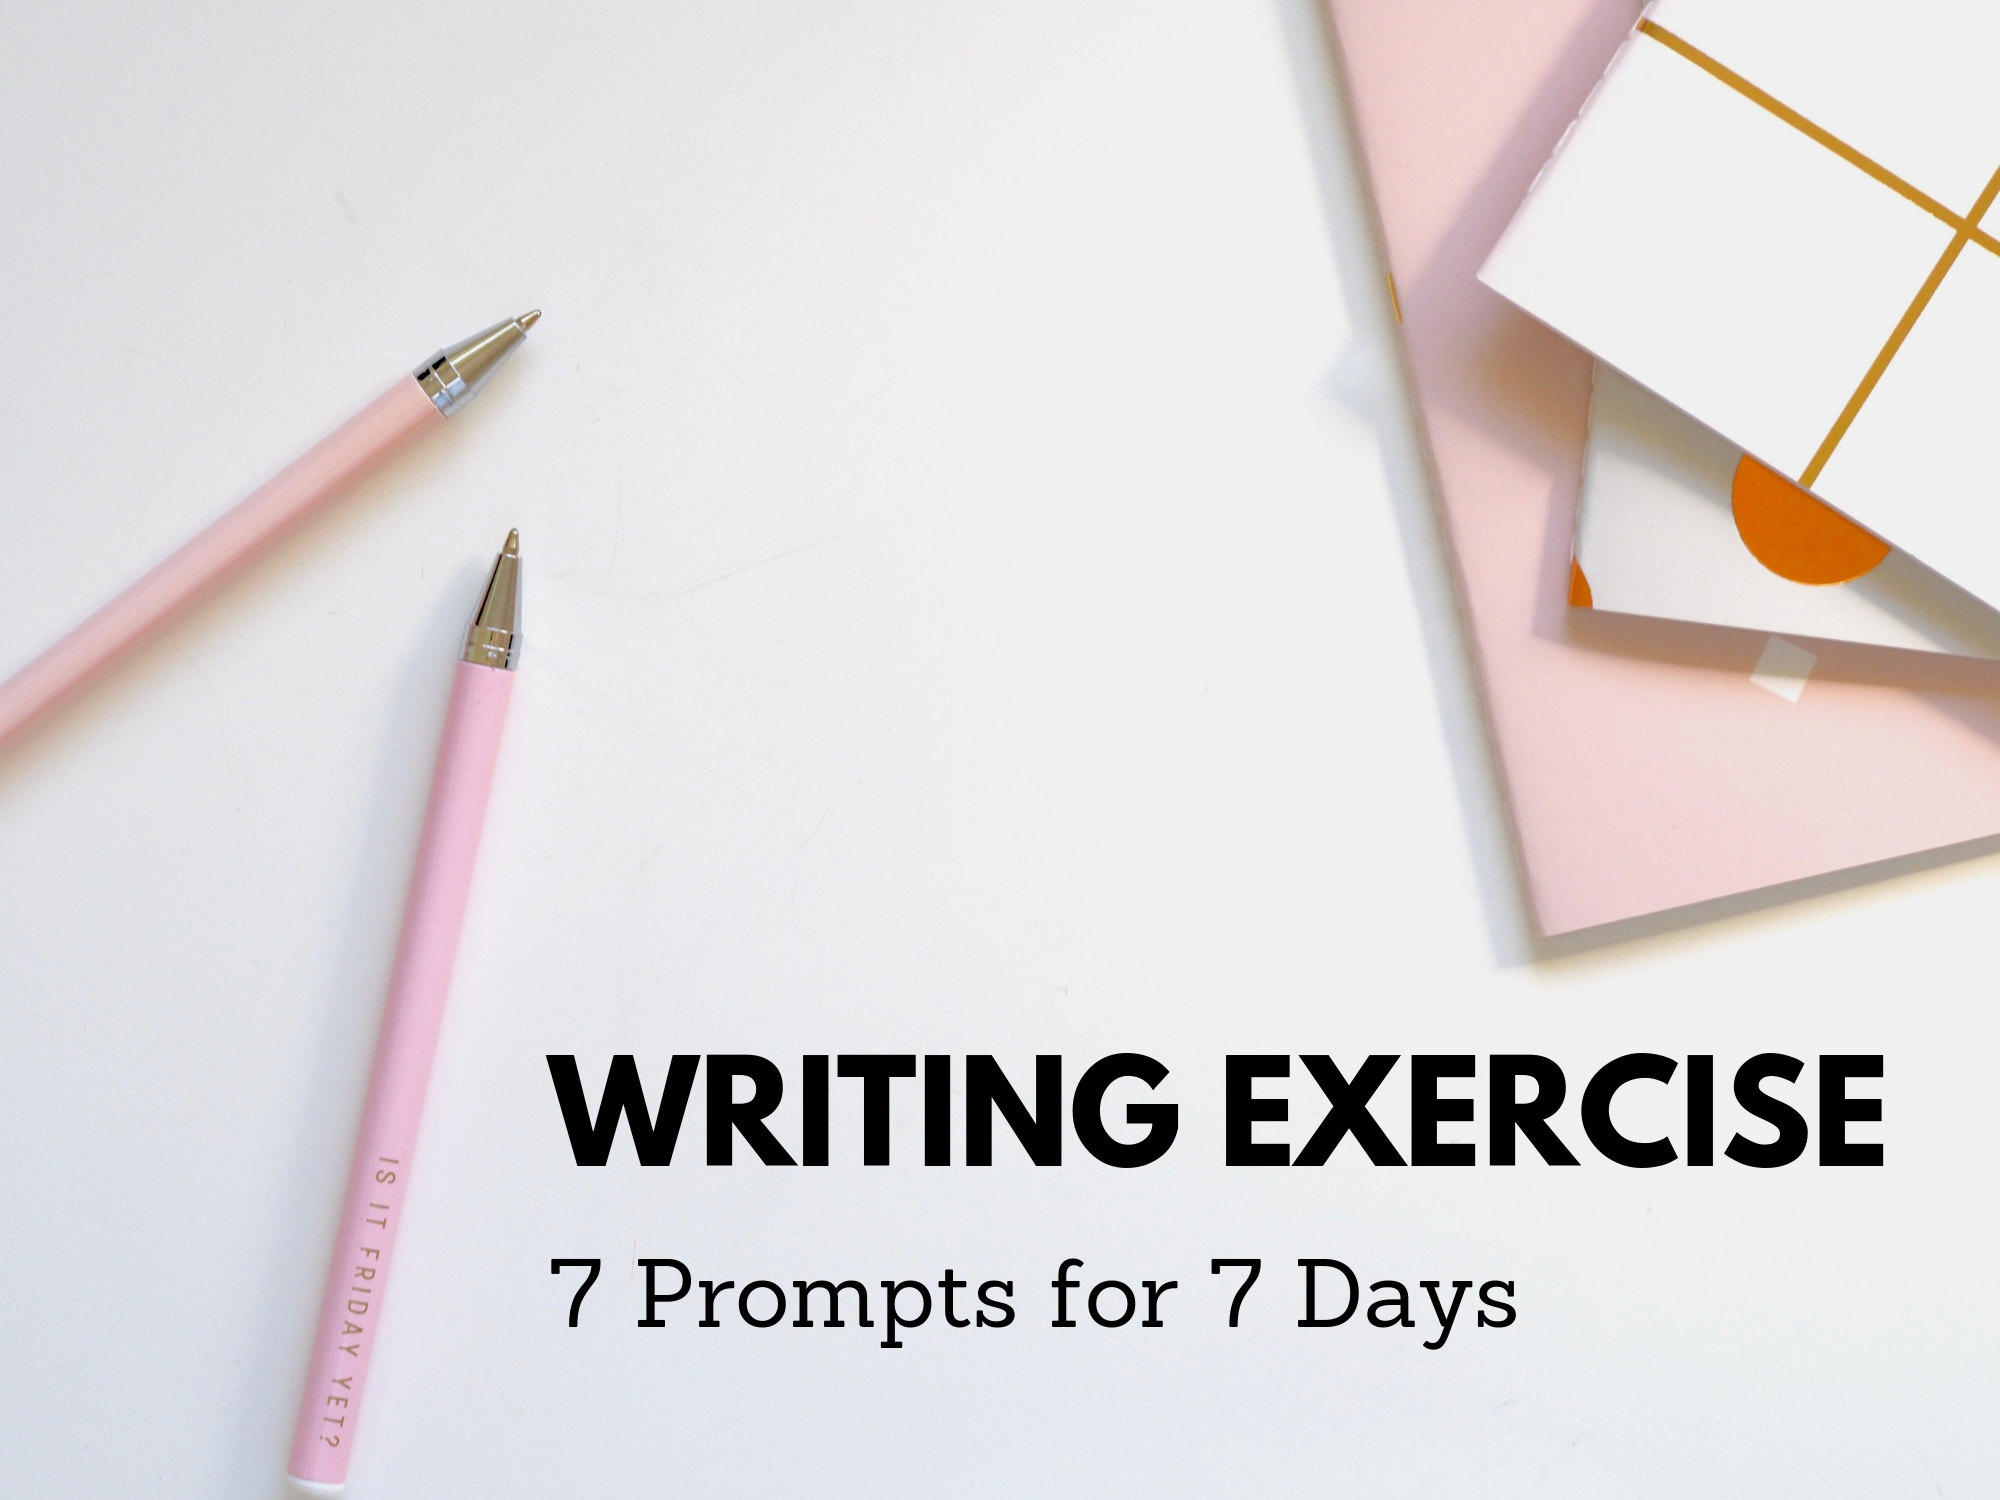 Writing Exercise Prompts